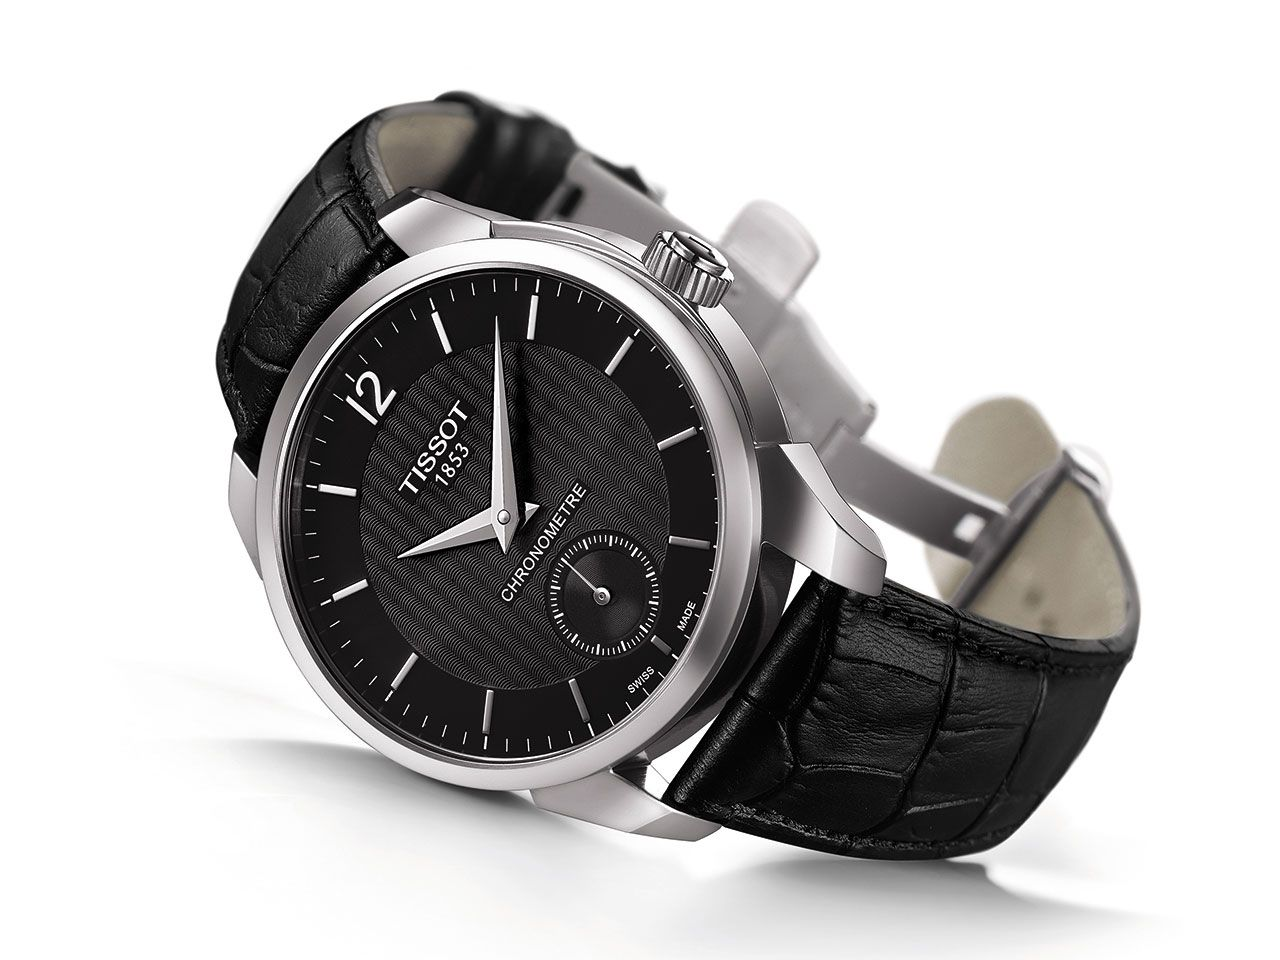 Tissot T-Complication Chronometer Watch - For more information please visit: http://www.boxfox1.com/2014/05/tissot-t-complication-chronometer-watch.html